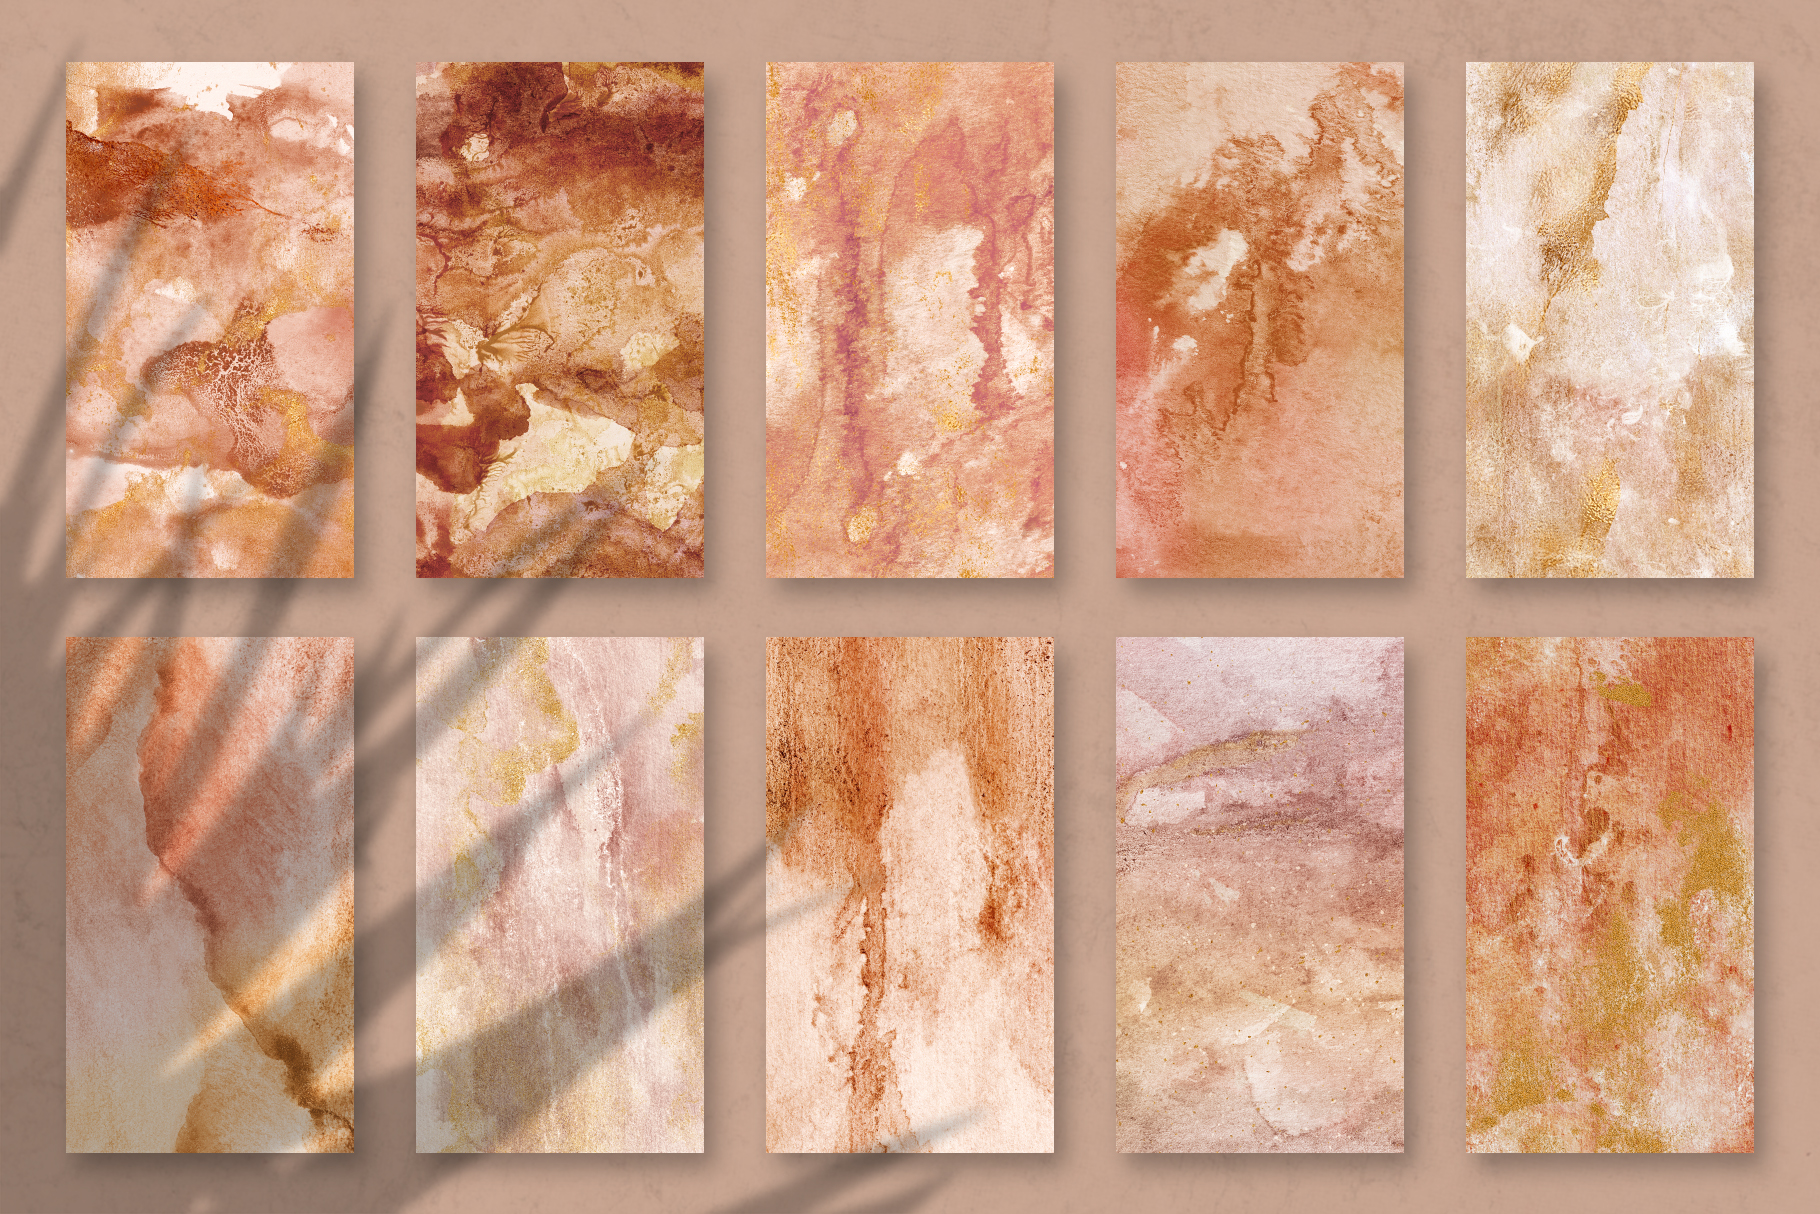 20 Seamless Watercolor Textures - Burnt Orange Backgrounds example image 16